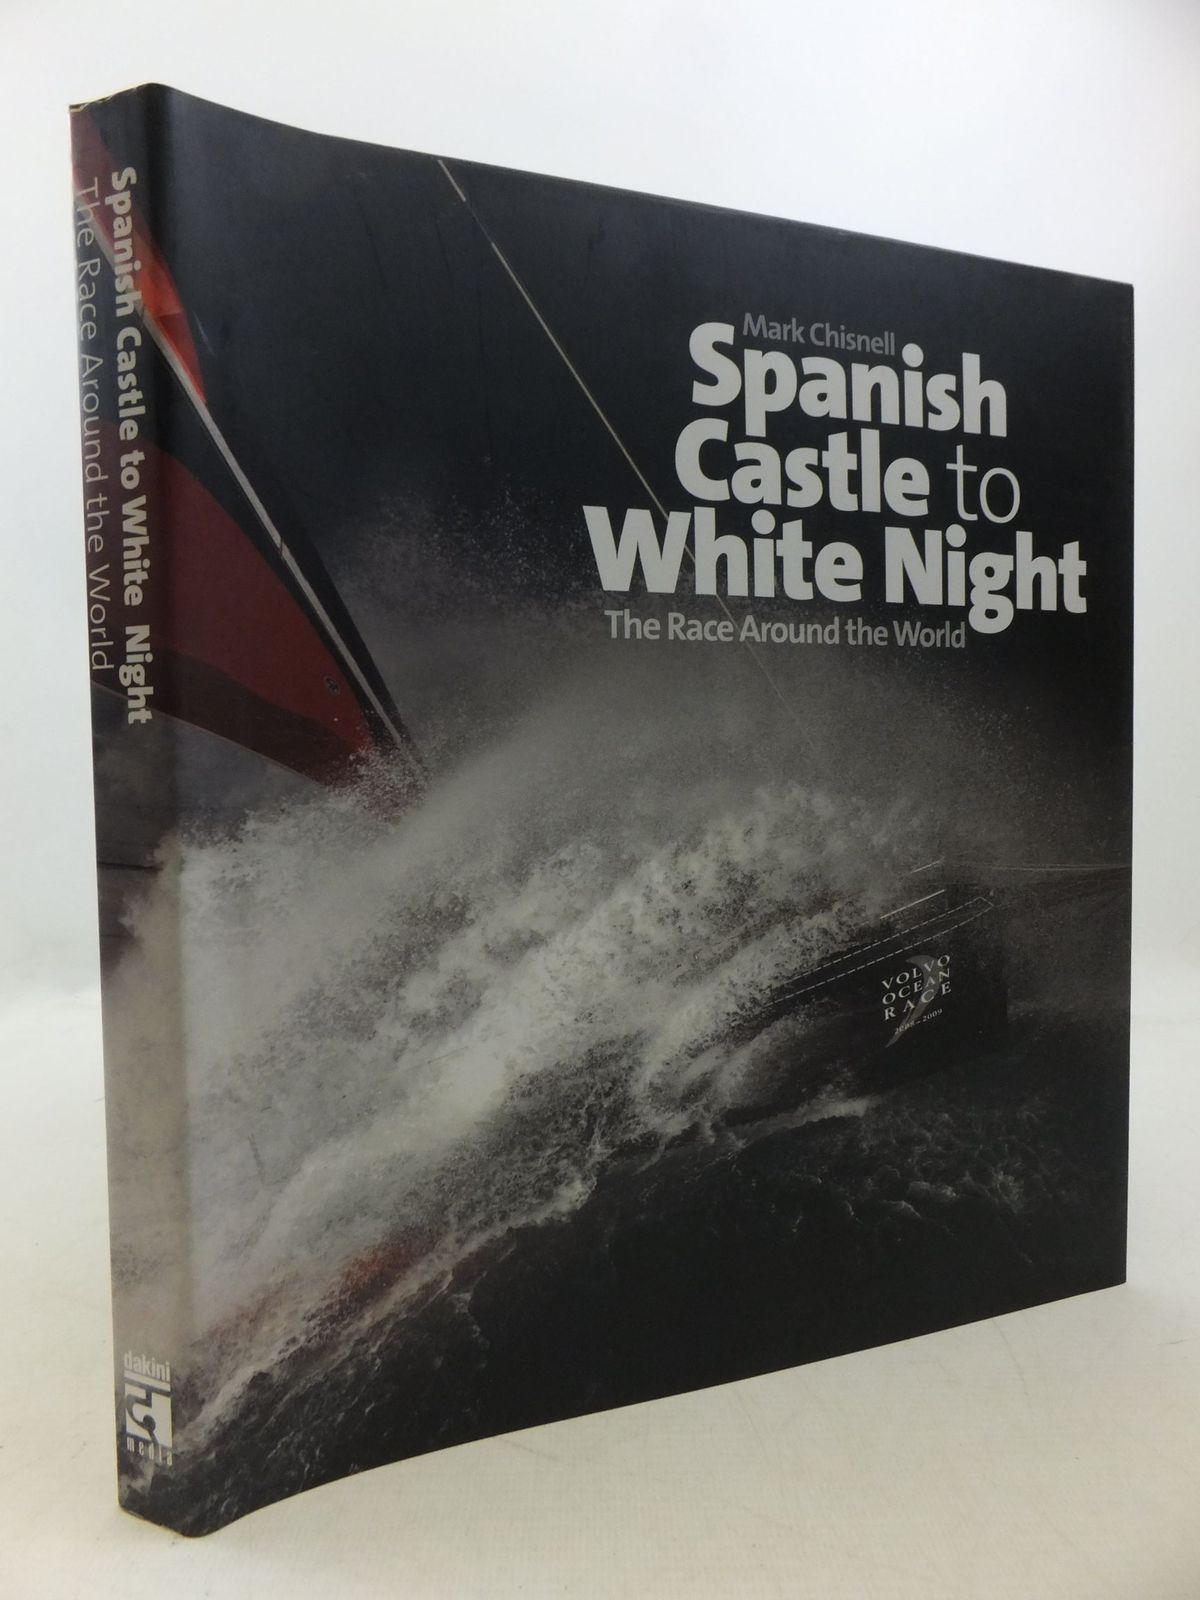 Photo of SPANISH CASTLE TO WHITE NIGHT THE RACE AROUND THE WORLD written by Chisnell, Mark published by Dakini Media Ltd (STOCK CODE: 2112183)  for sale by Stella & Rose's Books